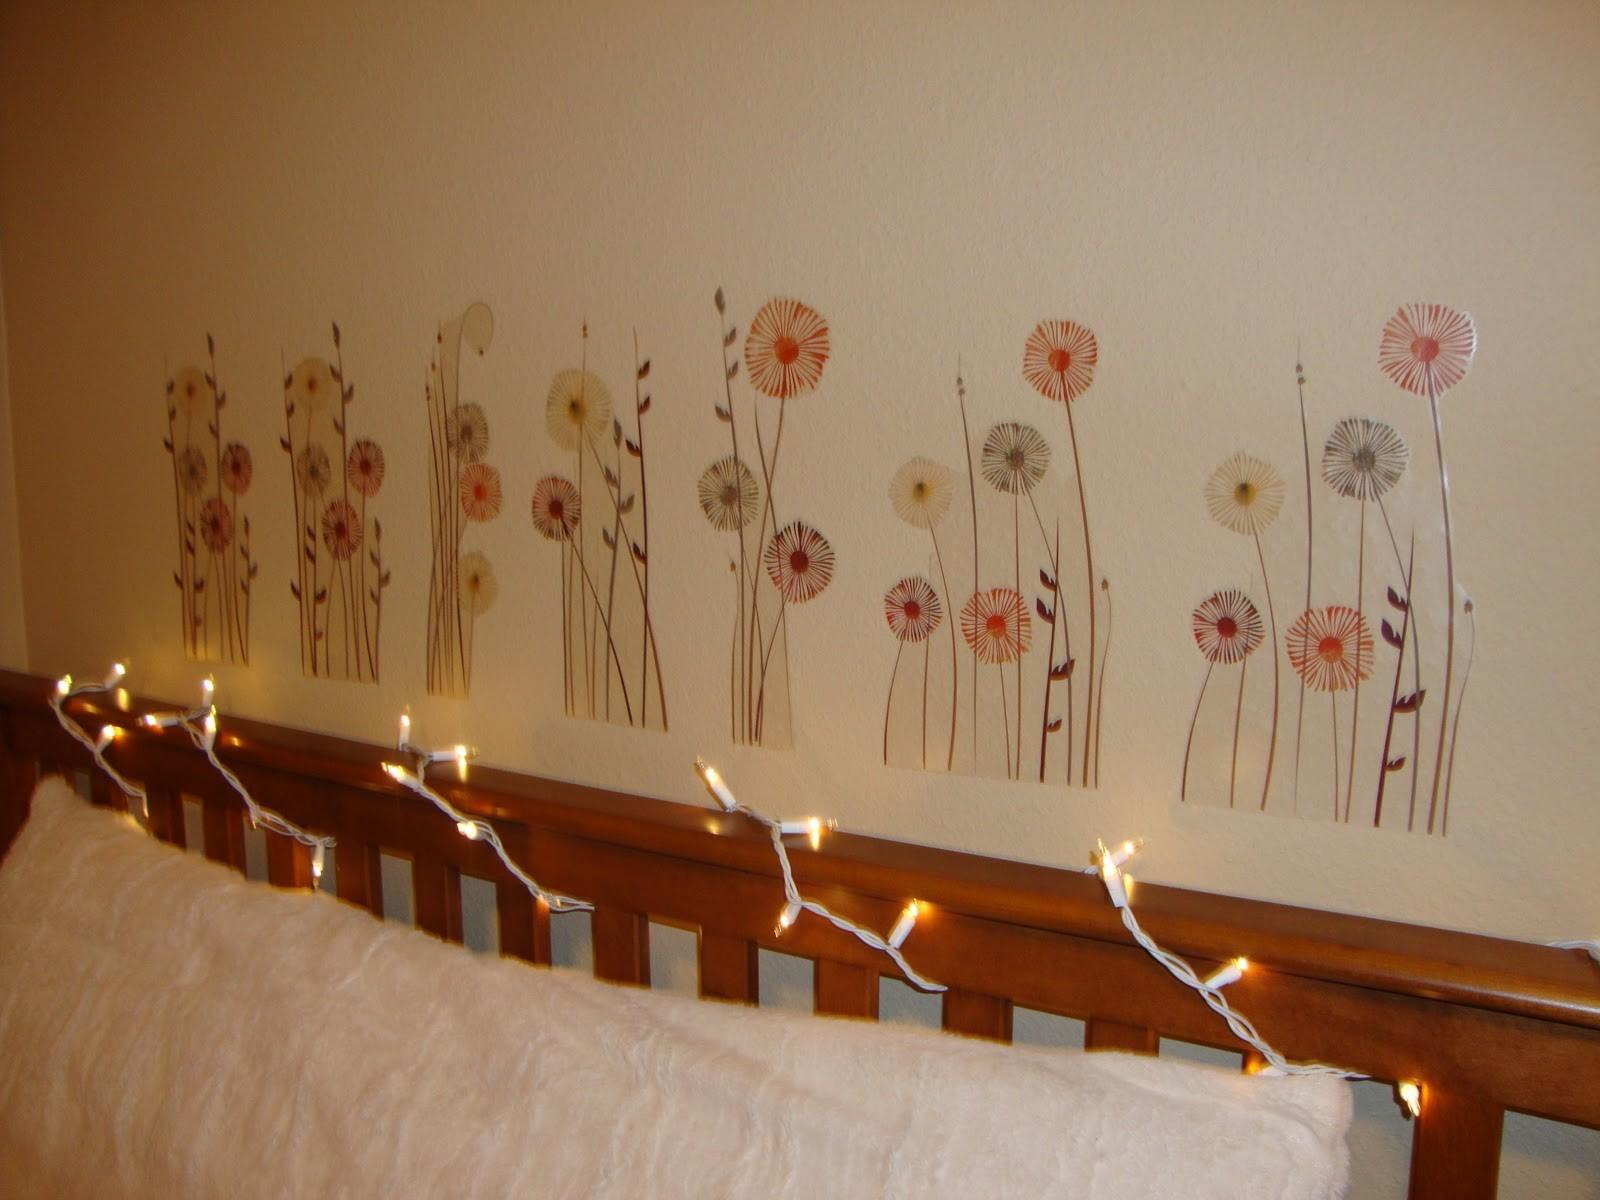 Hanging Christmas Lights Room Ideas Also